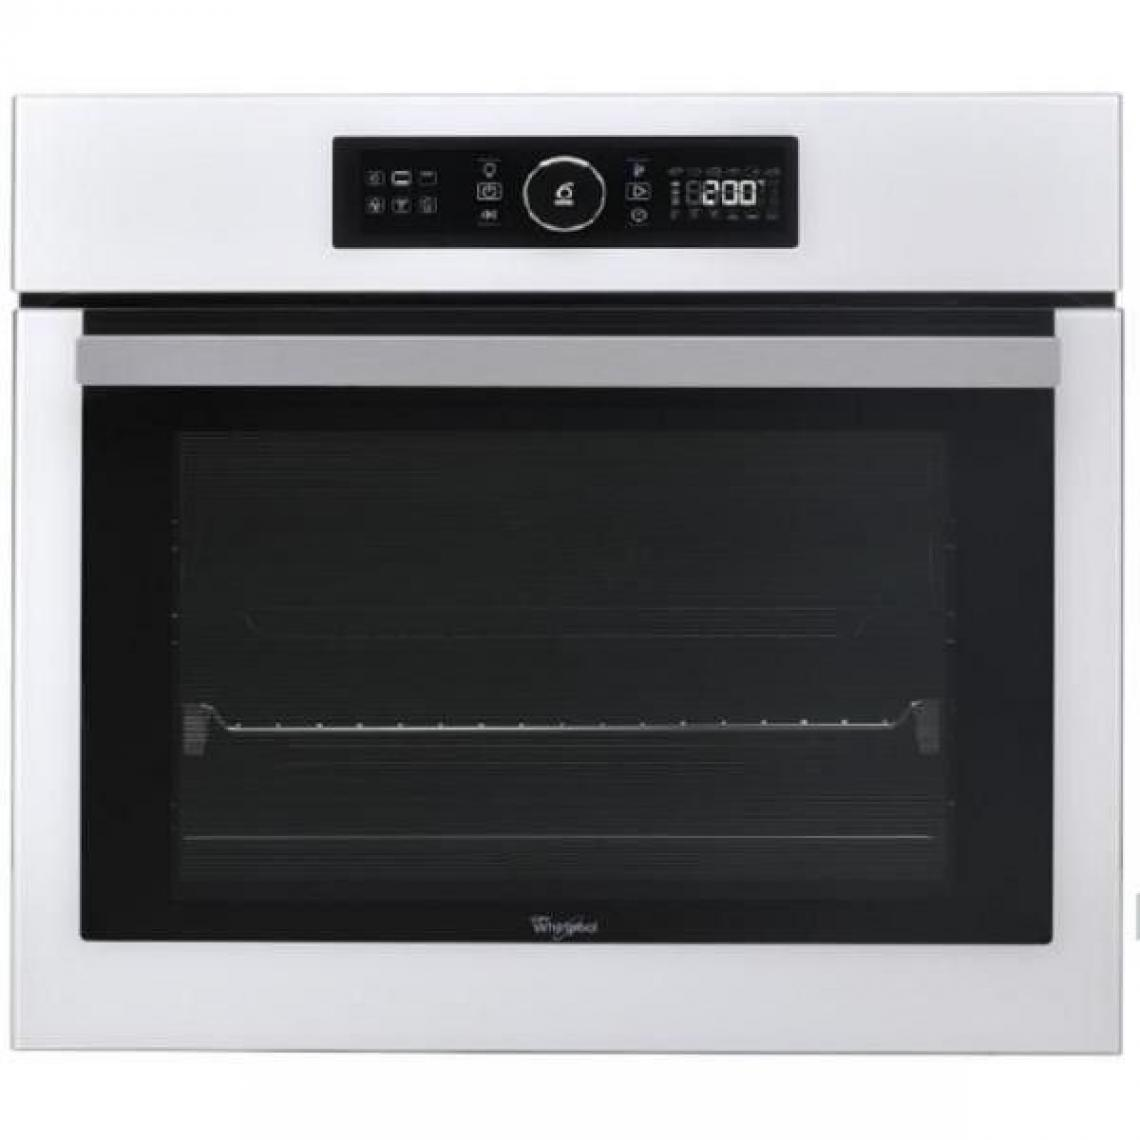 whirlpool Four encastrable Multifonction 73L WHIRLPOOL 3650W 59.5cm A+, AKZ96290WH